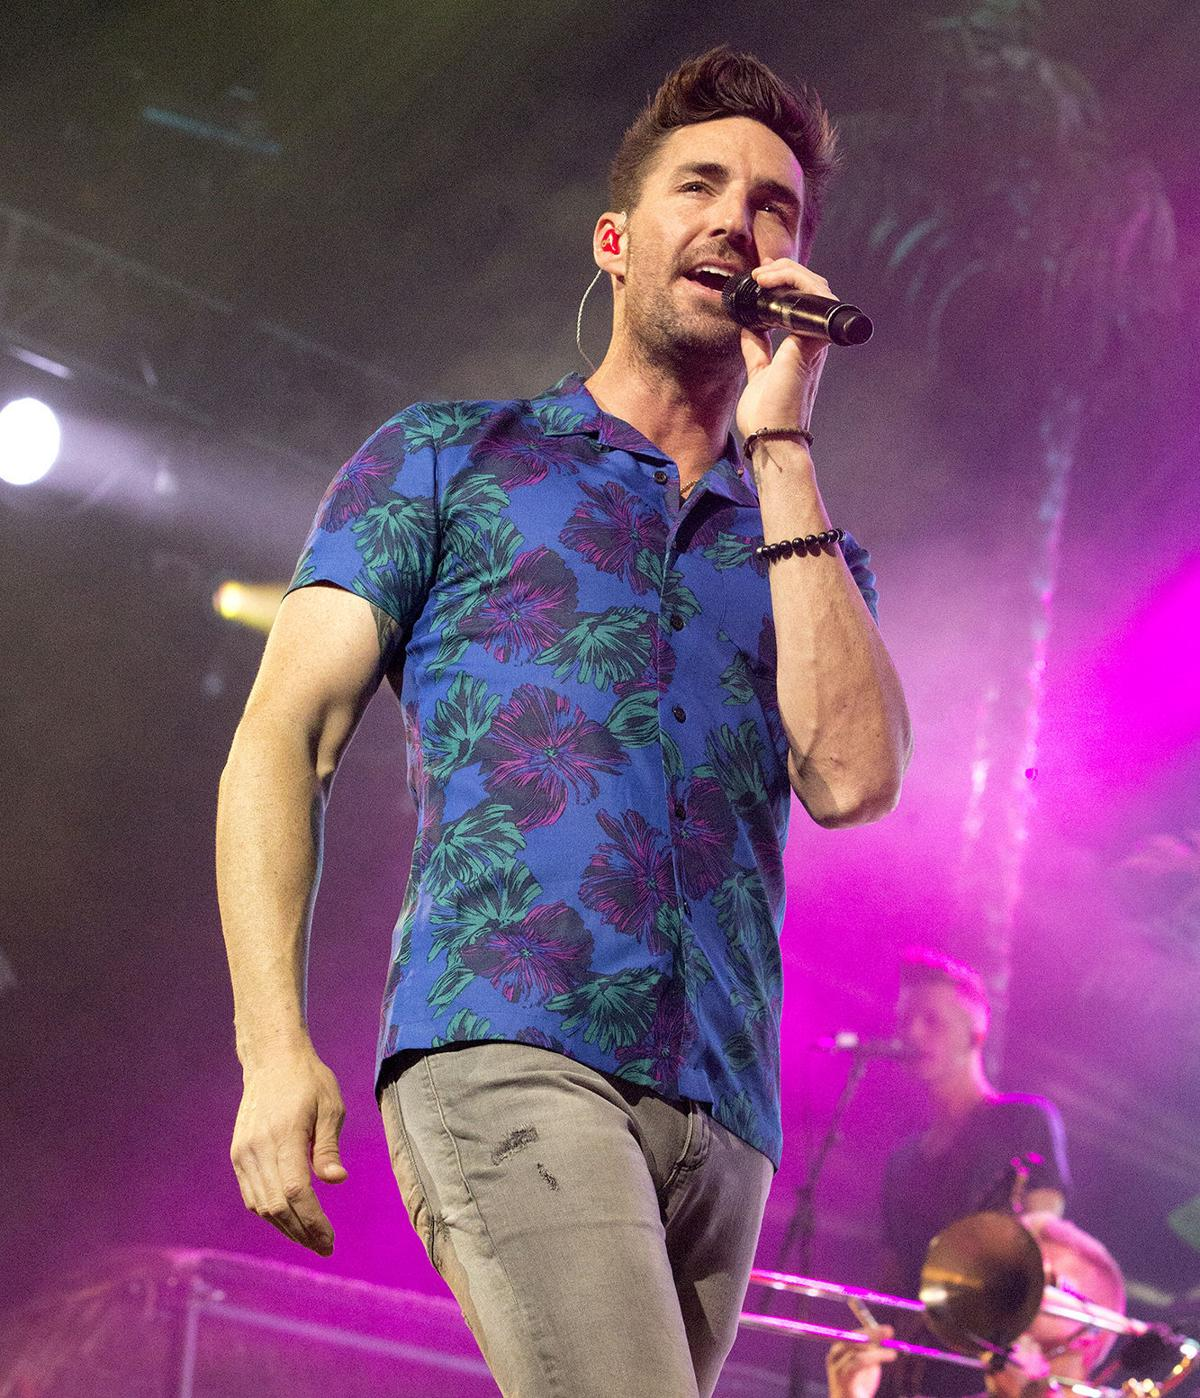 Jake Owen List Of Songs Complete fan-requested country superstar coming to 2018 dubuque county fair